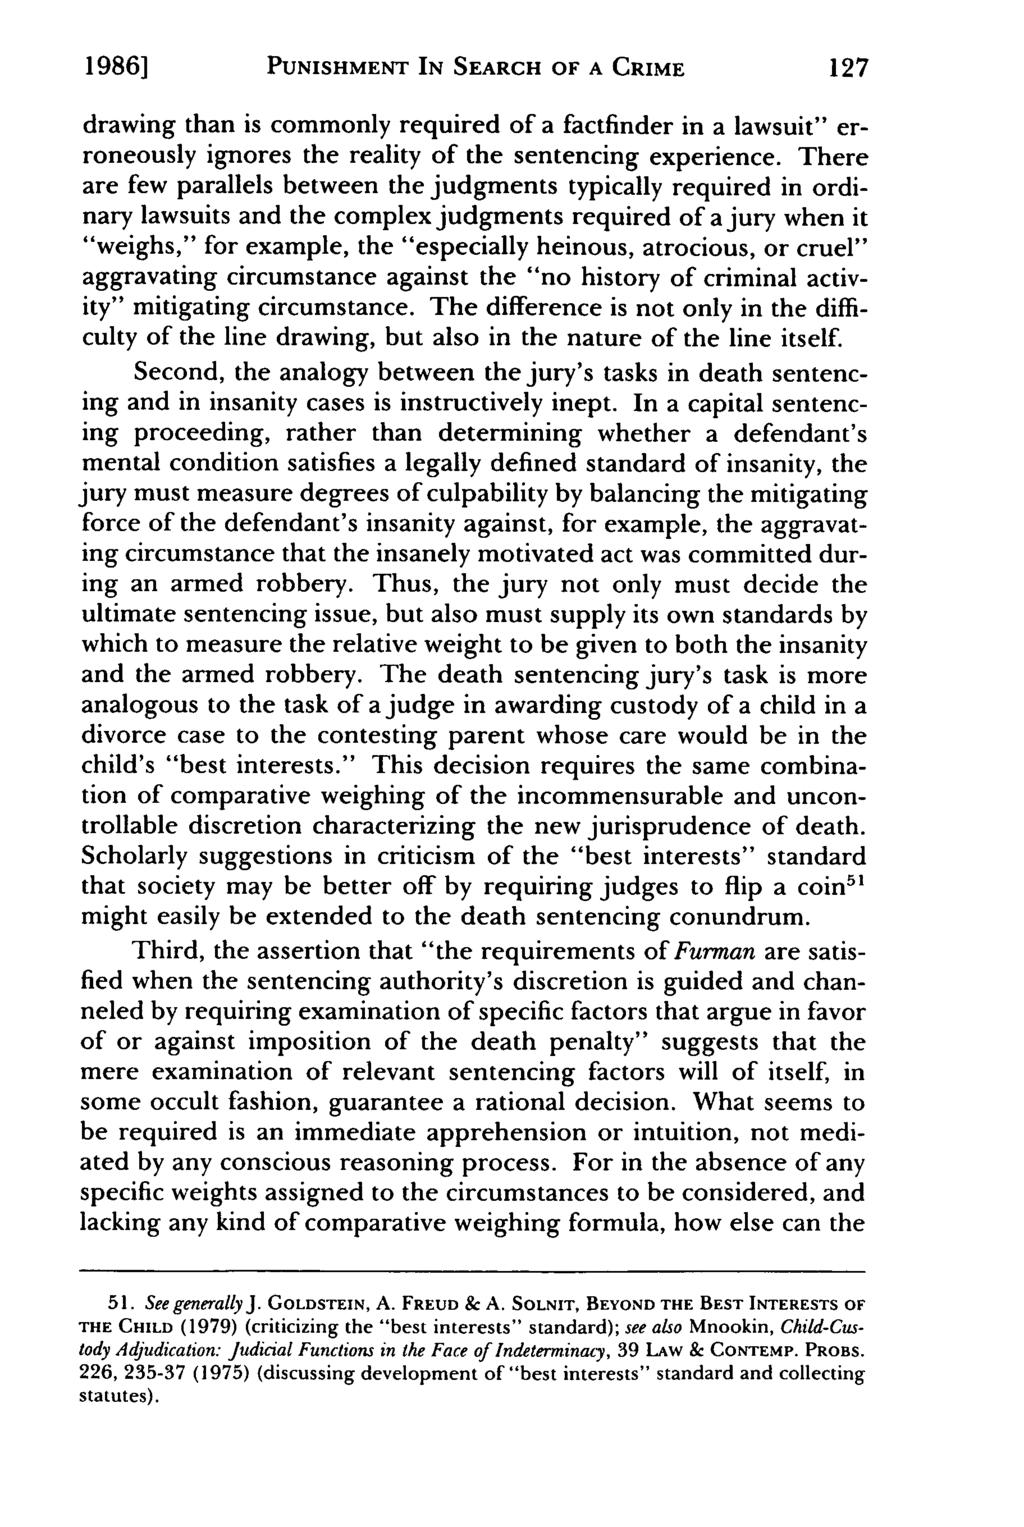 "1986] PUNISHMENT IN SEARCH OF A CRIME drawing than is commonly required of a factfinder in a lawsuit"" erroneously ignores the reality of the sentencing experience."